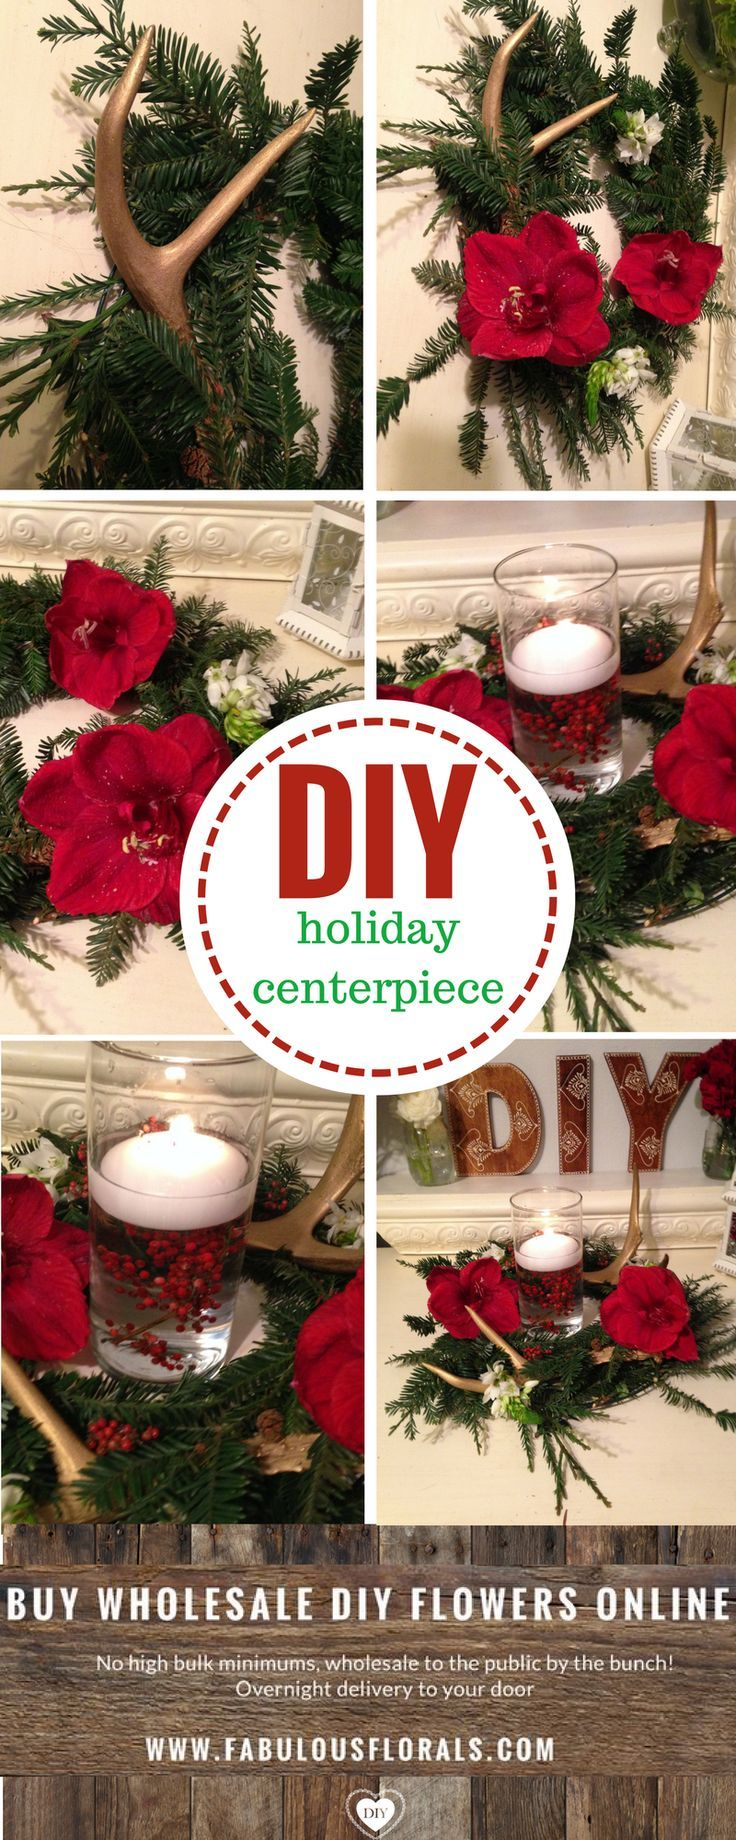 Holiday arrangements wholesale bulk flowers fiftyflowers - Diy Holiday Antler Centerpiece 2017 Christmas Flower Trends Http Www Fabulousflorals